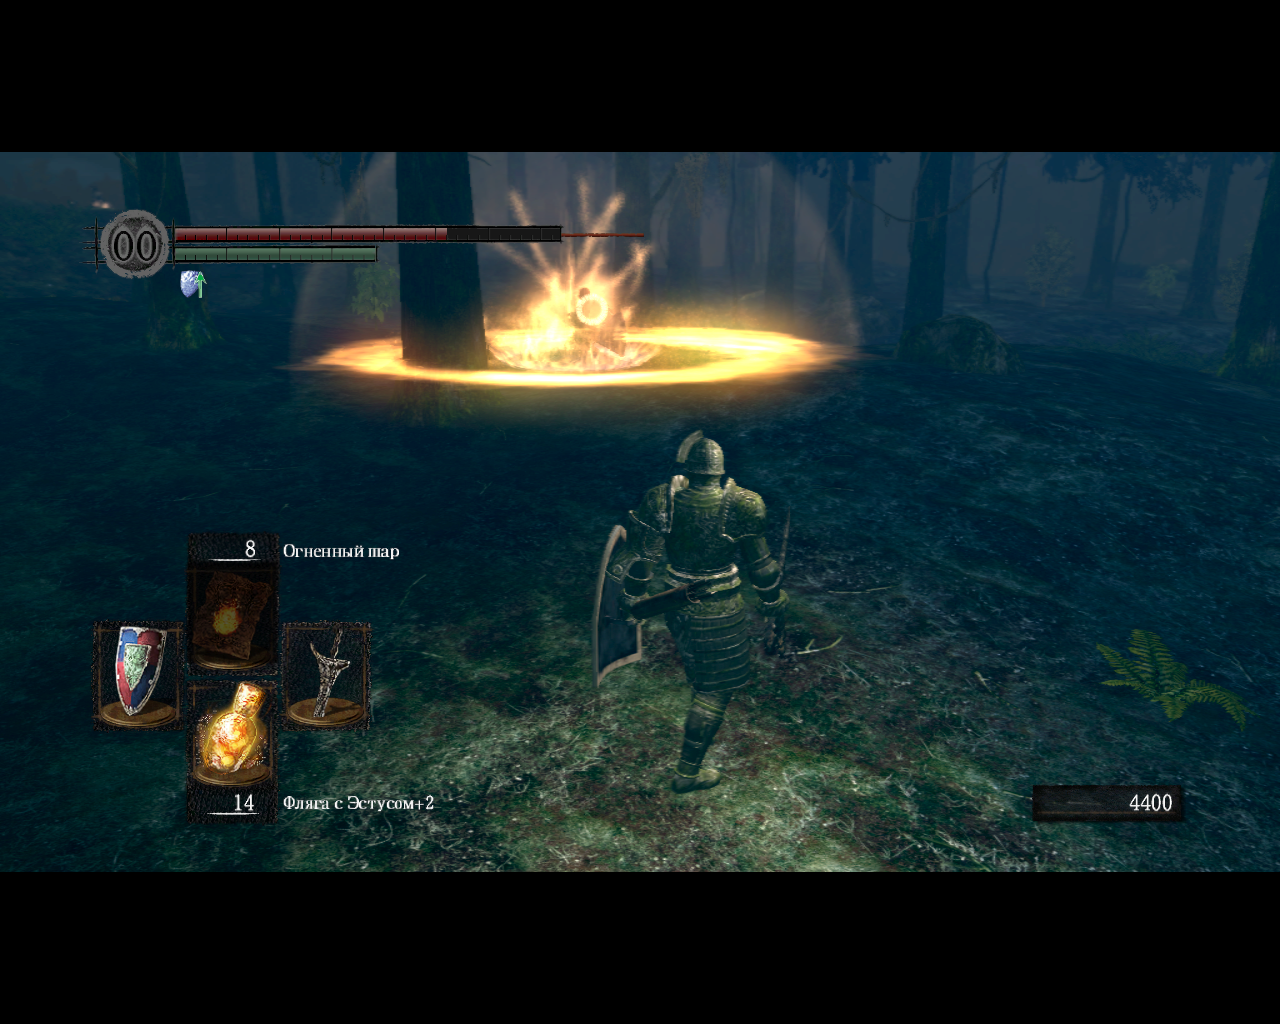 Dark Souls: Prepare to Die Edition Windows Encountered a sorcerer in Darkroot Garden